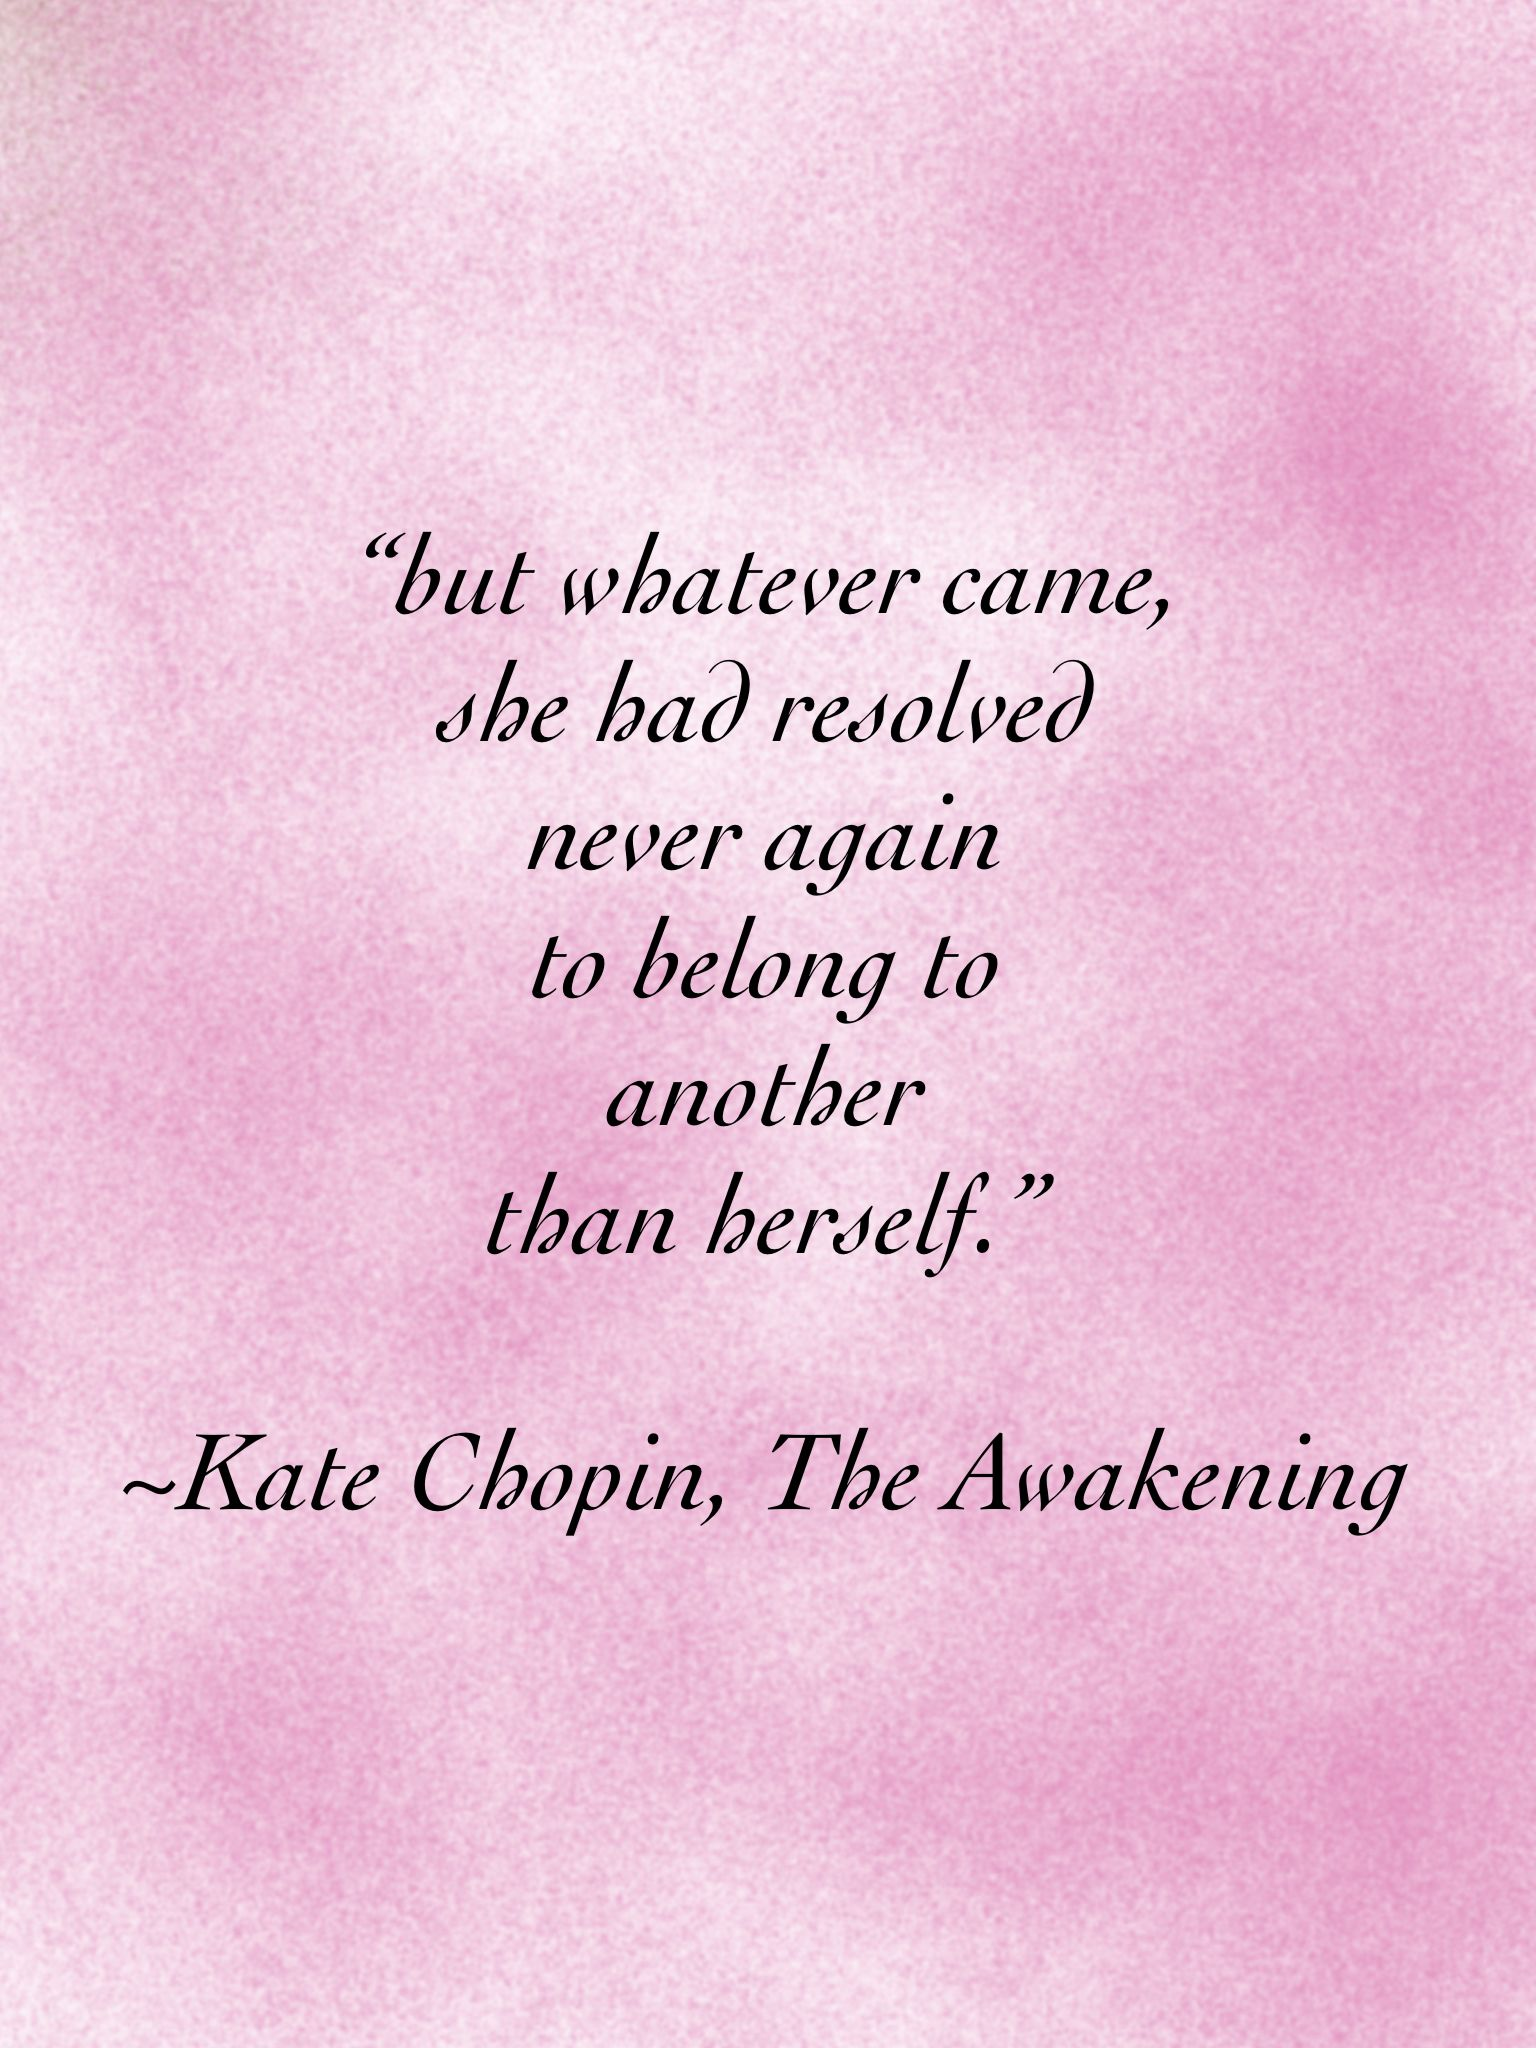 an analysis of frederick chopins impromptu in the awakening by kate chopin Online and print materials relating to kate chopin, as well as a list of primary sources used in the production of kate chopin: a re-awakening.